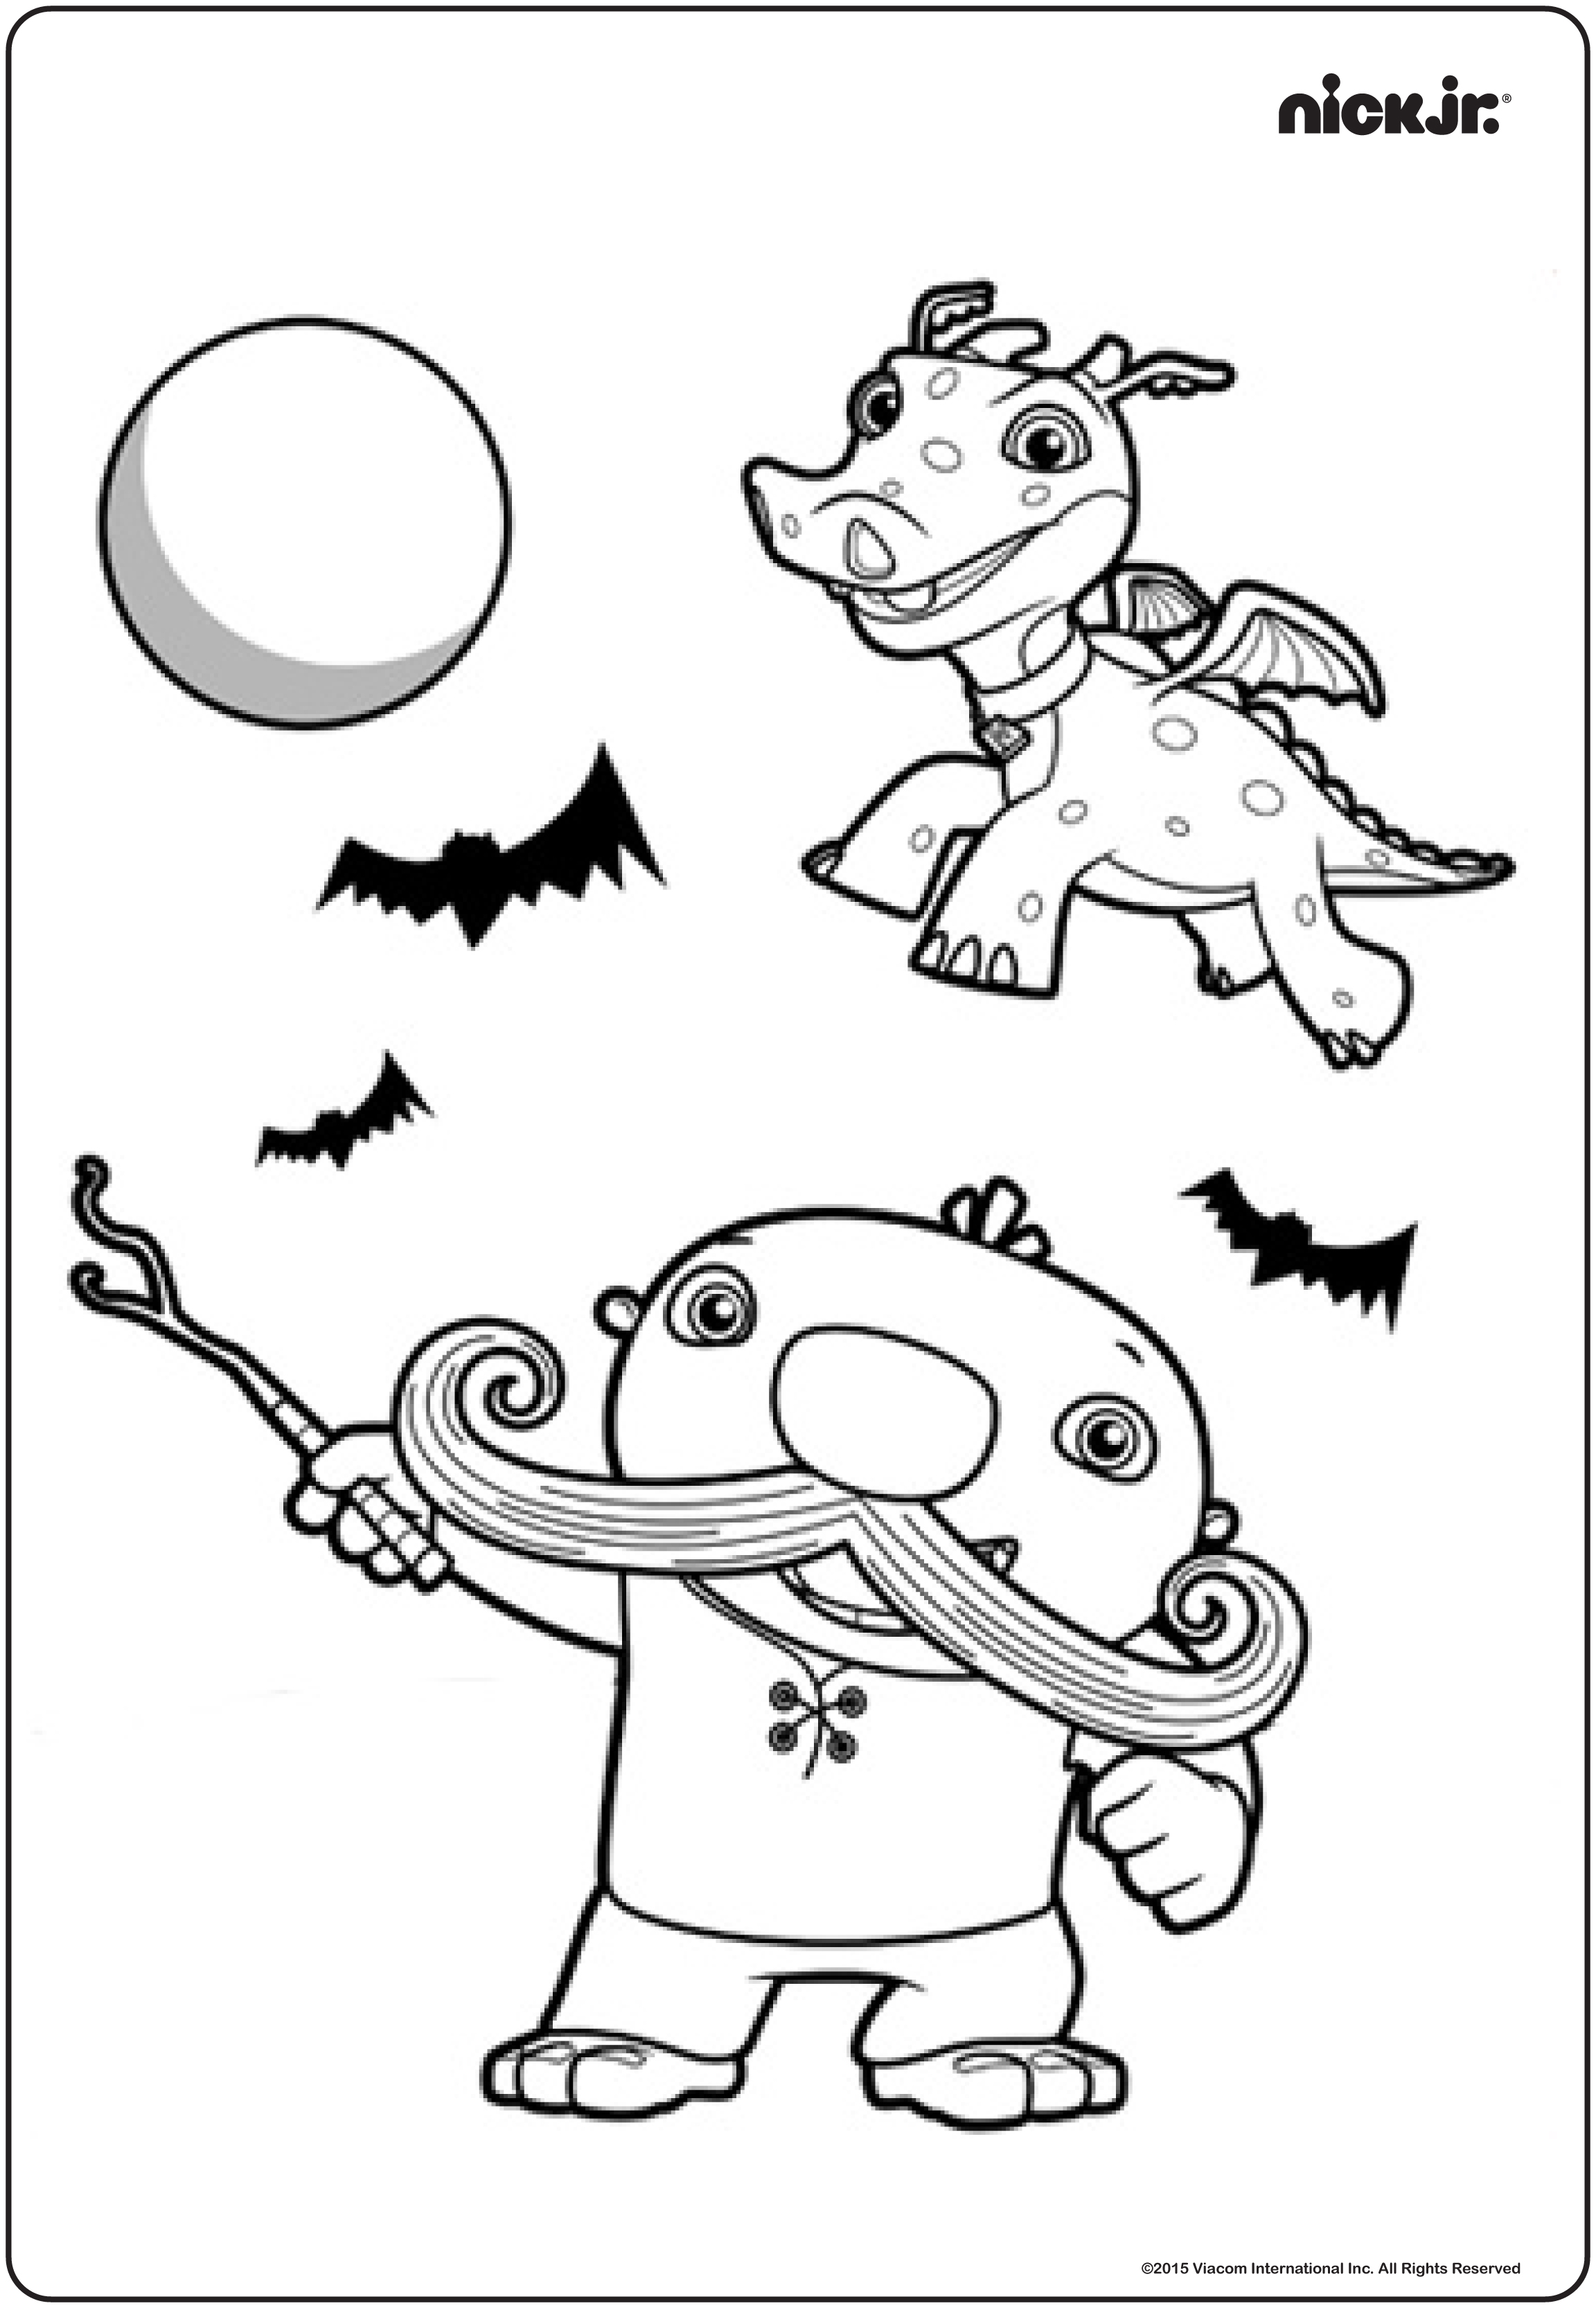 nick jr coloring pages halloween - photo#11